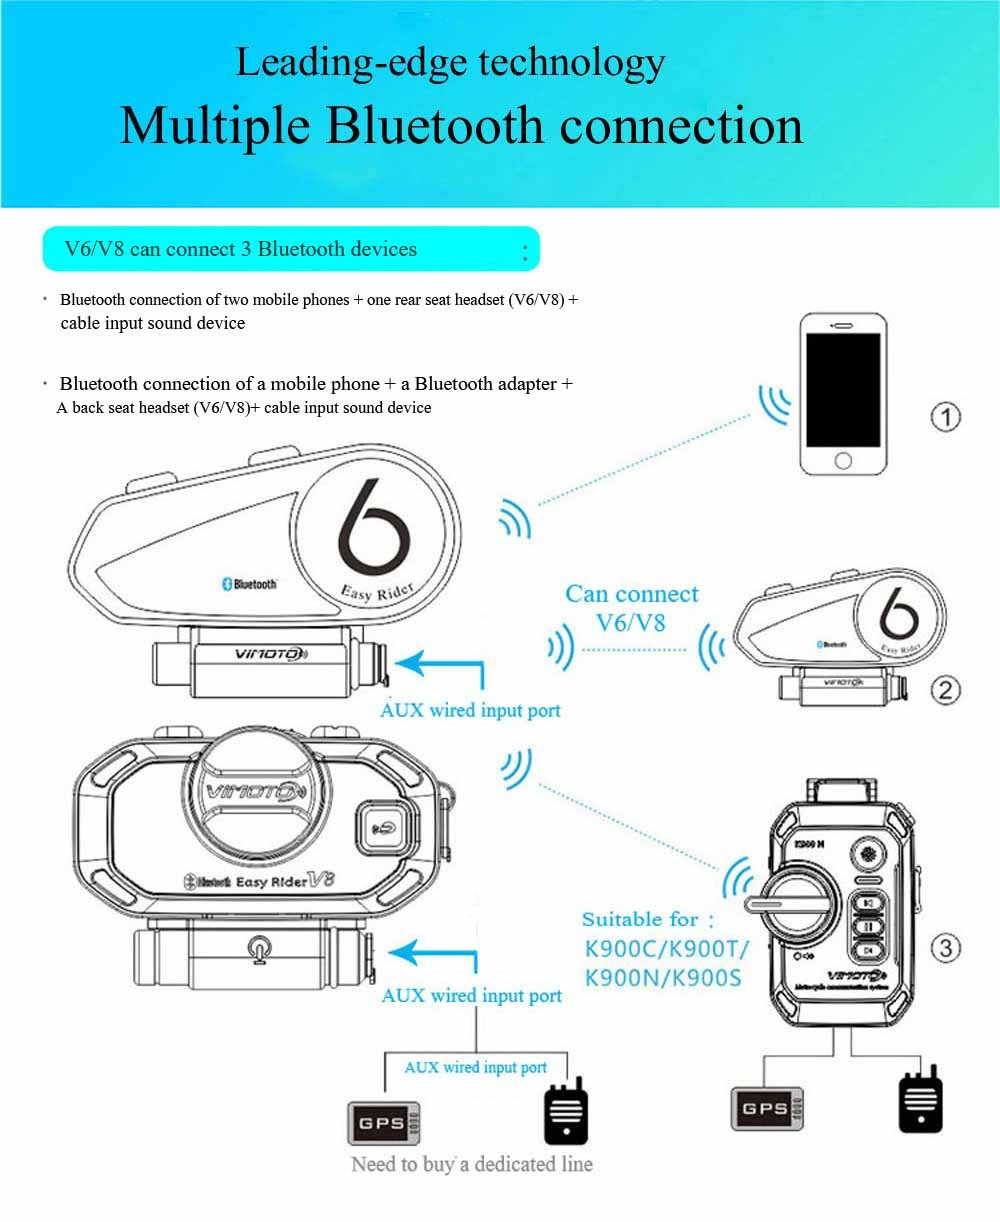 English Version Easy Rider Vimoto V8 Helmet Bluetooth Headset Dongle Wiring Diagram V6v8 1